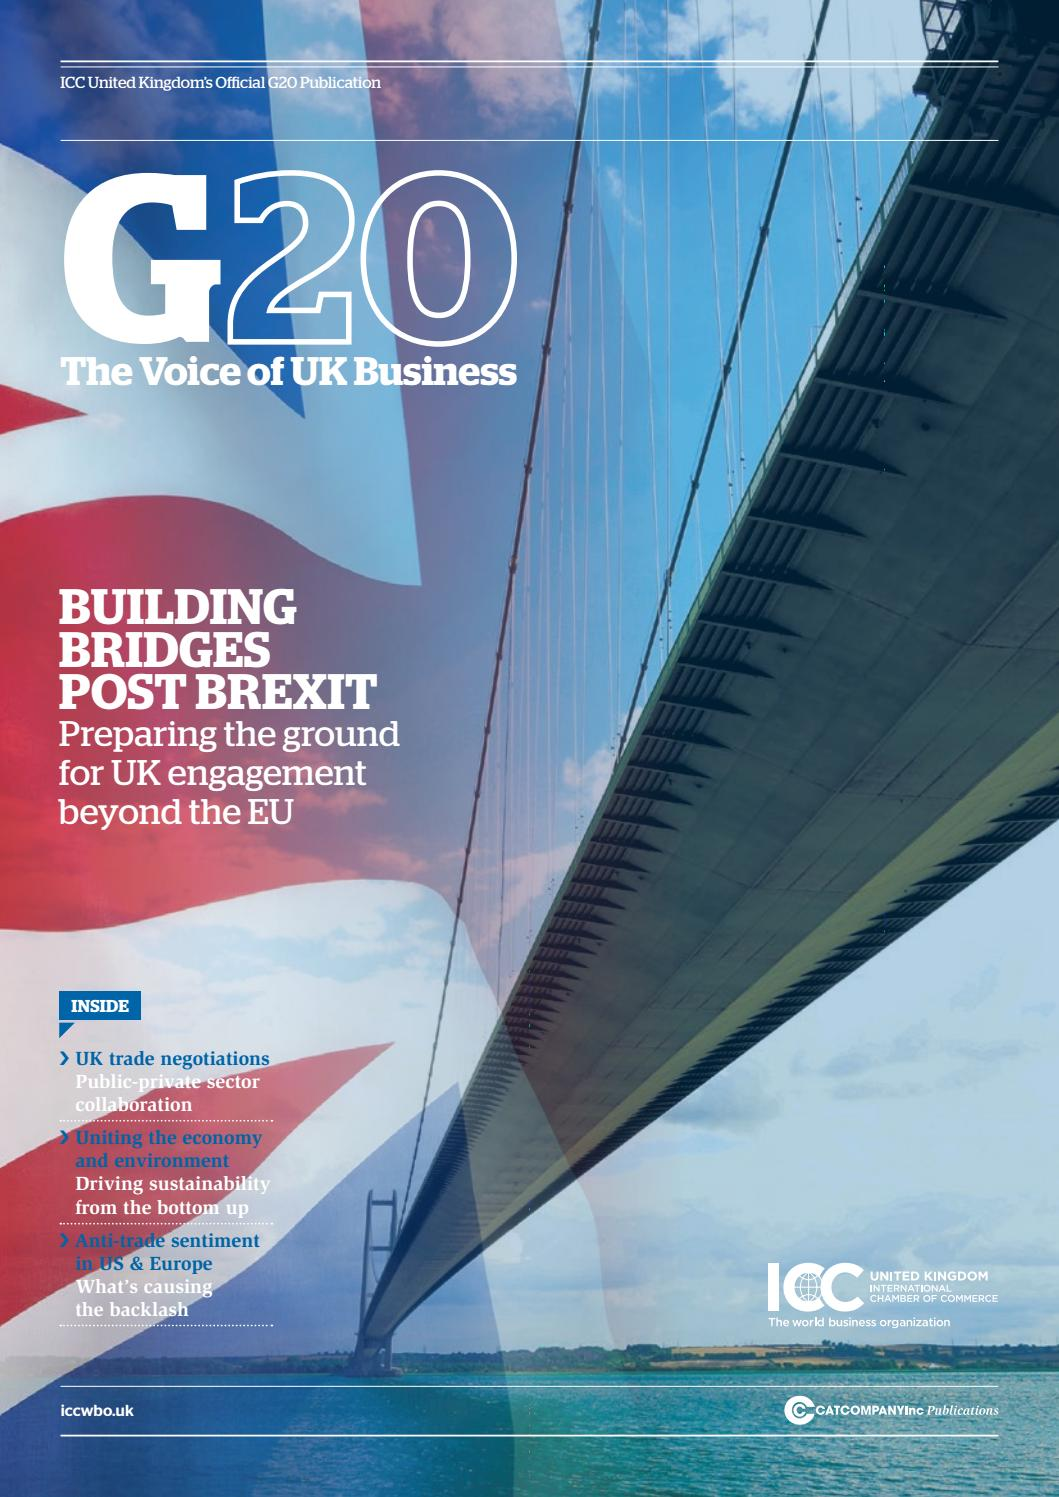 The official ICC UK G20 summit publication